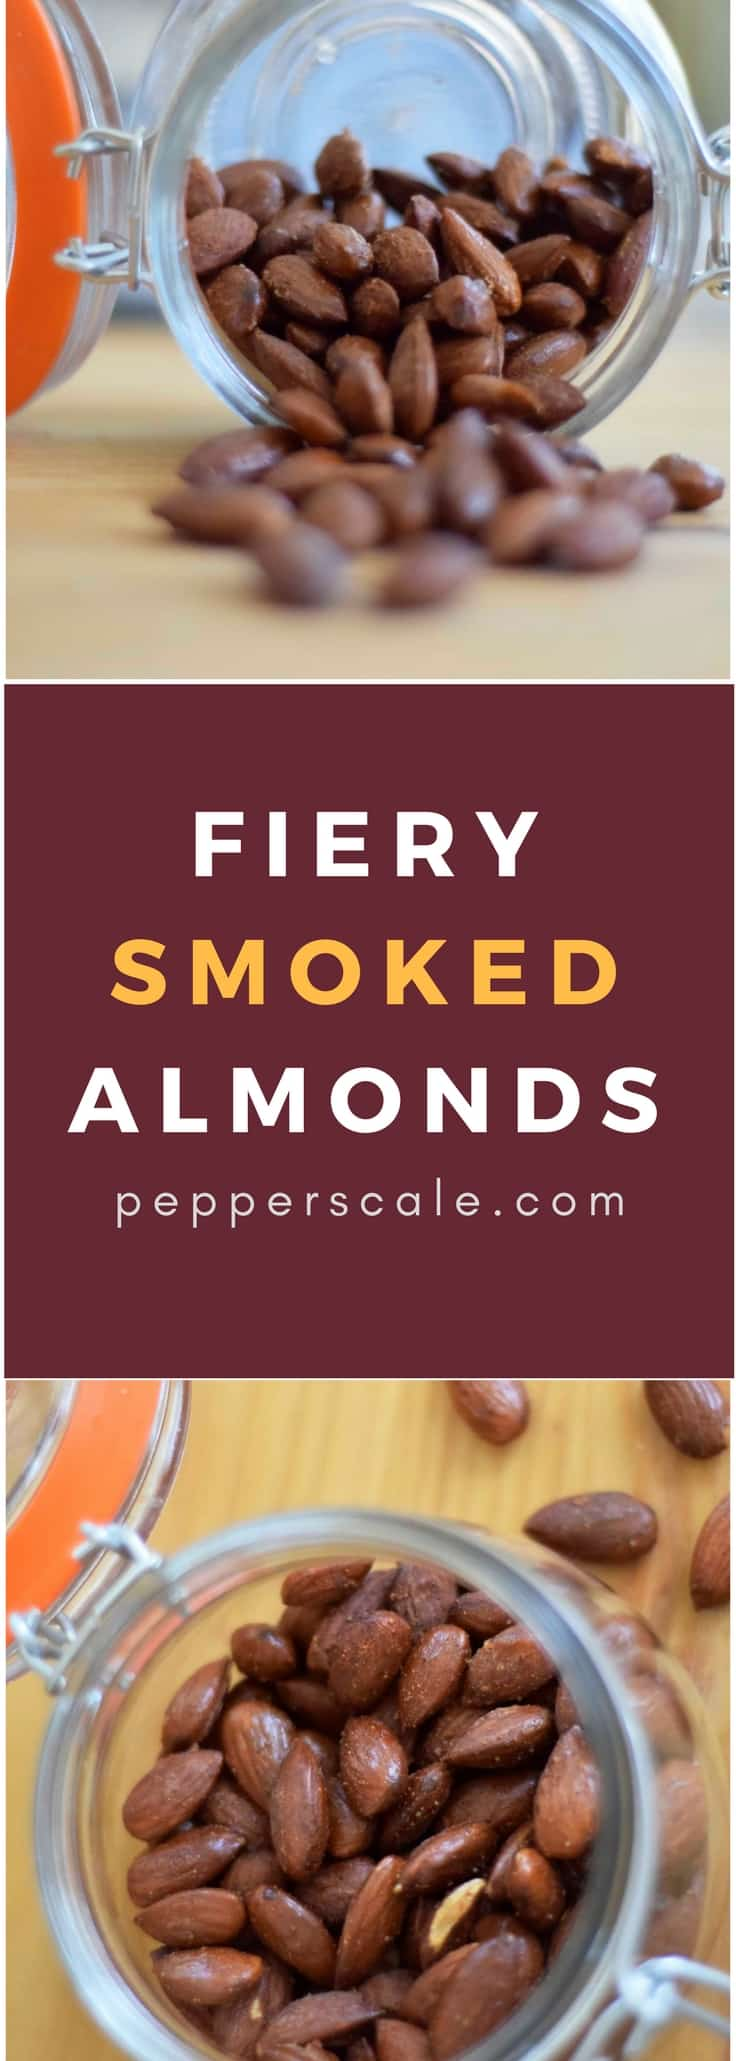 Fiery smoked almonds are pure yum, and it's a simple #recipe to make. It's spicy snacking done right - smoked paprika and cayenne pepper star.